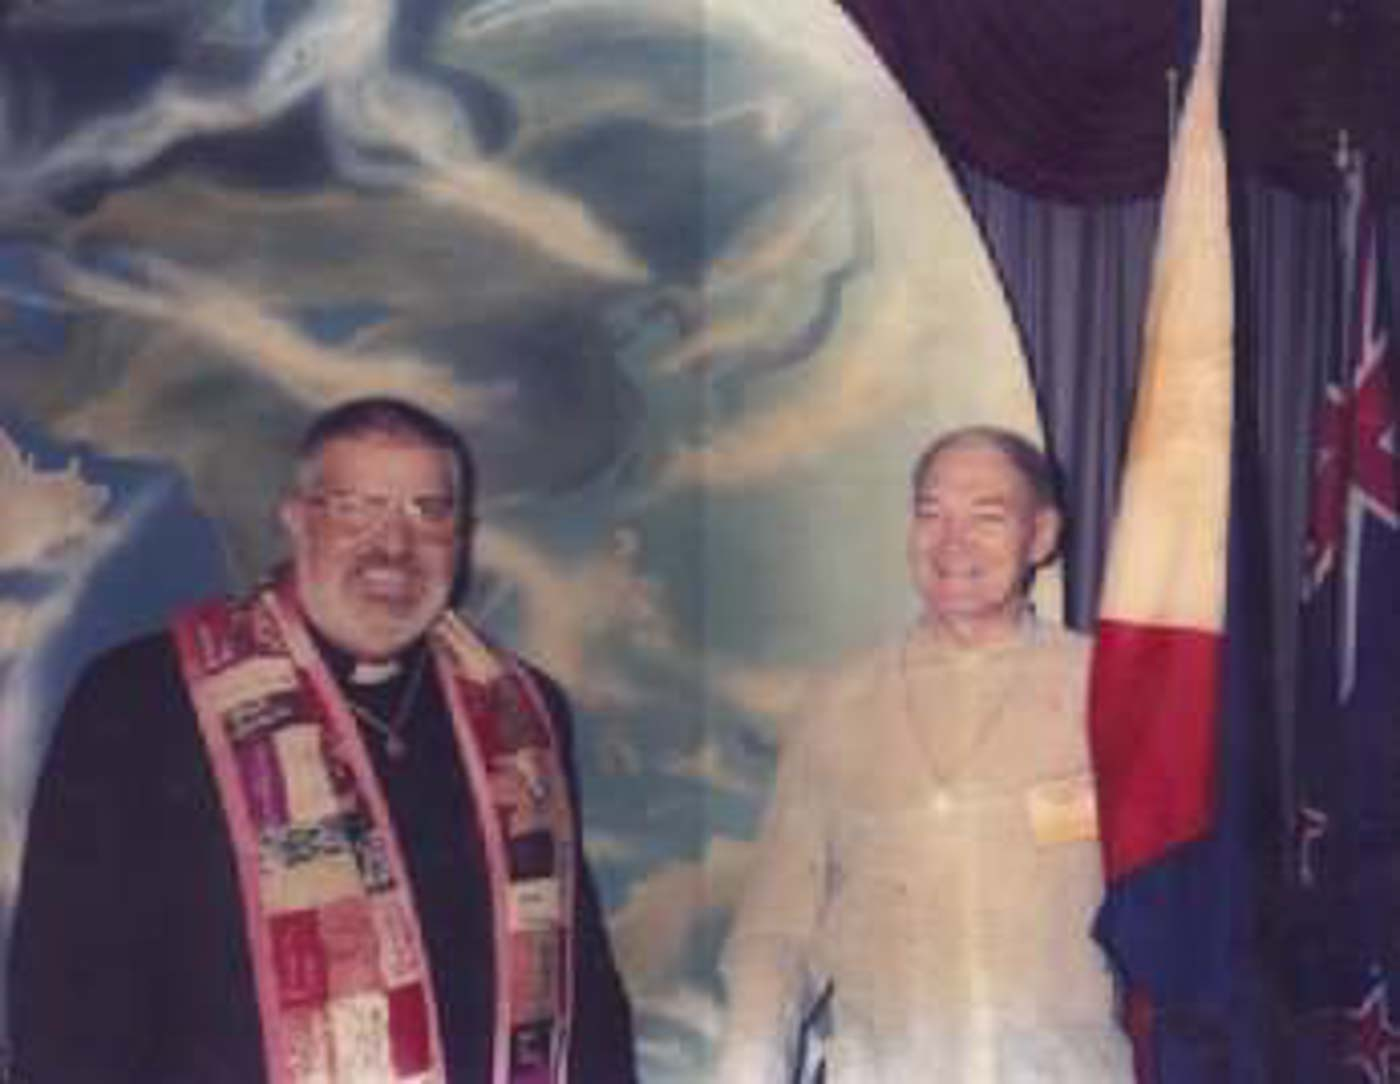 FOUNDING OF MCC MANILA. Father Richard Mickley (right) holding the flag of the Philippines with Reverend Troy Perry, founder of MCC worldwide. Photo courtesy of Father Richard Mickley